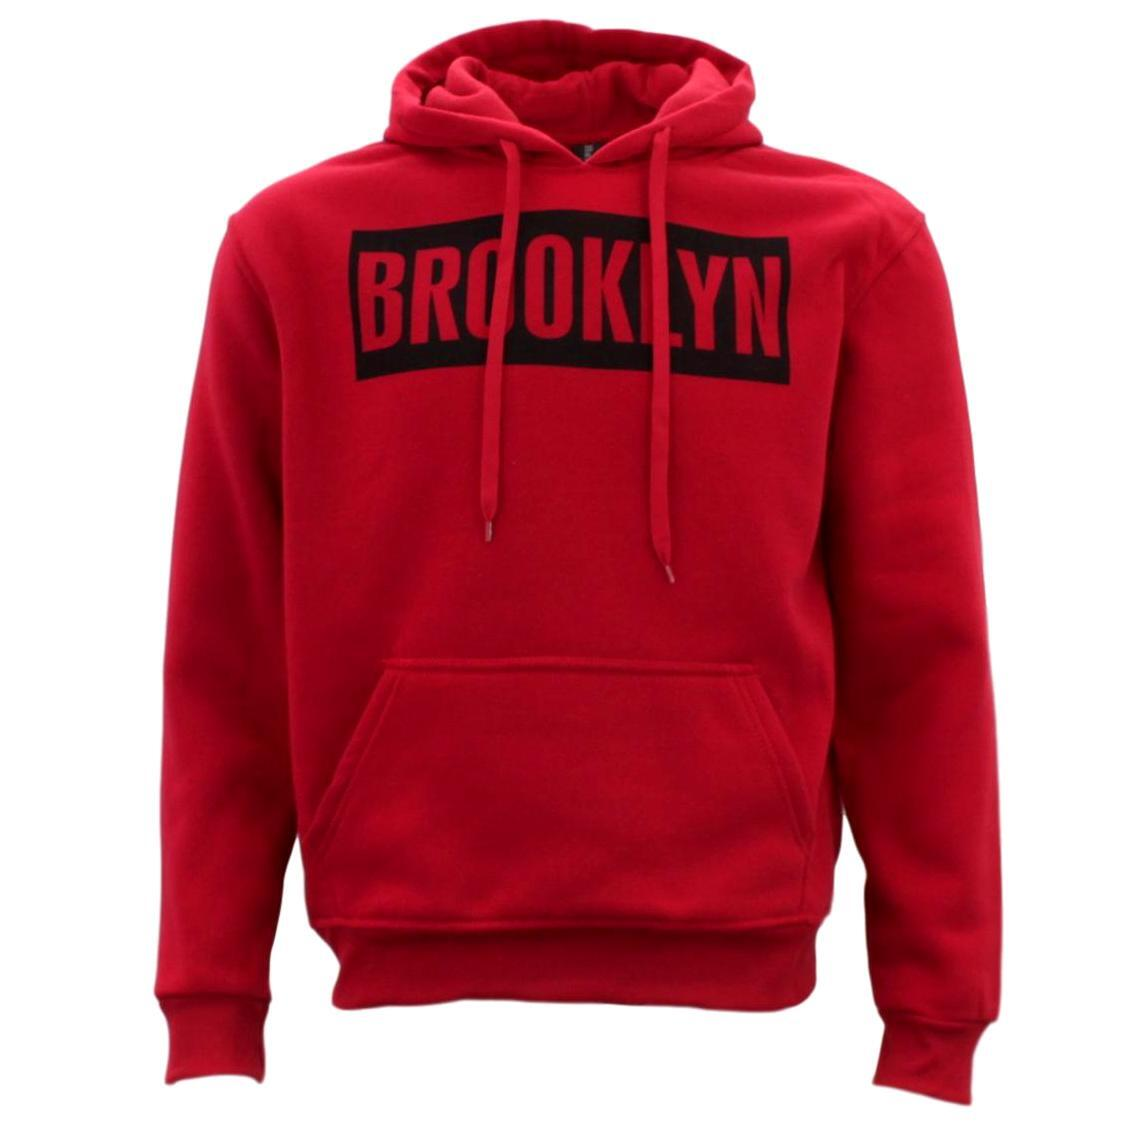 Adult-Men-039-s-Unisex-Hoodie-Hooded-Jumper-Pullover-Women-039-s-Sweater-BROOKLYN thumbnail 33